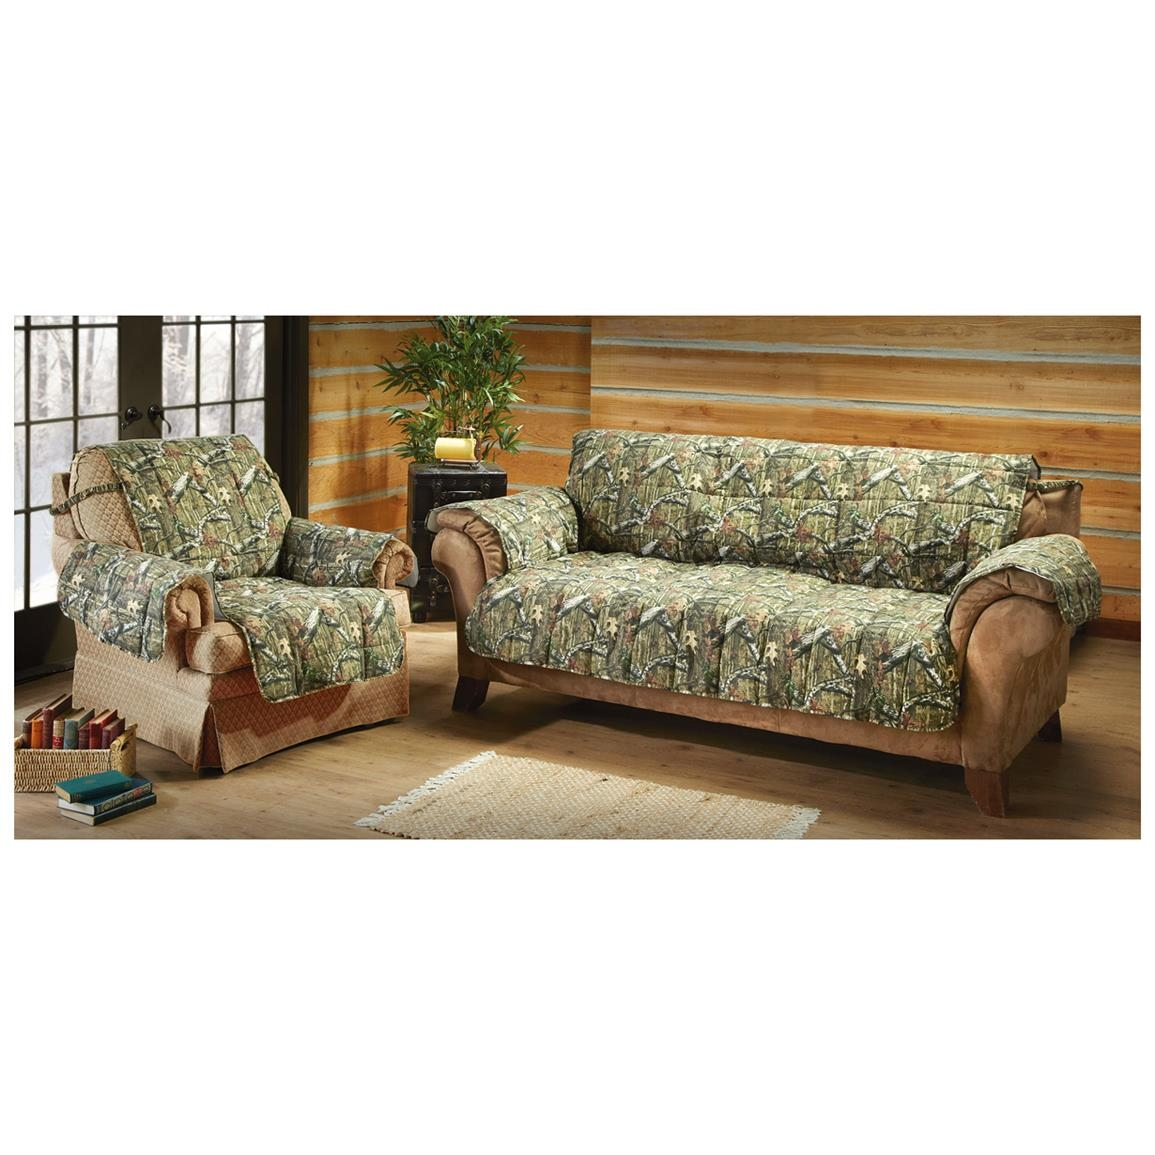 Mossy Oak Camo Furniture Covers 647980 Furniture Covers At Regarding Camo Sofa Cover (Image 12 of 15)